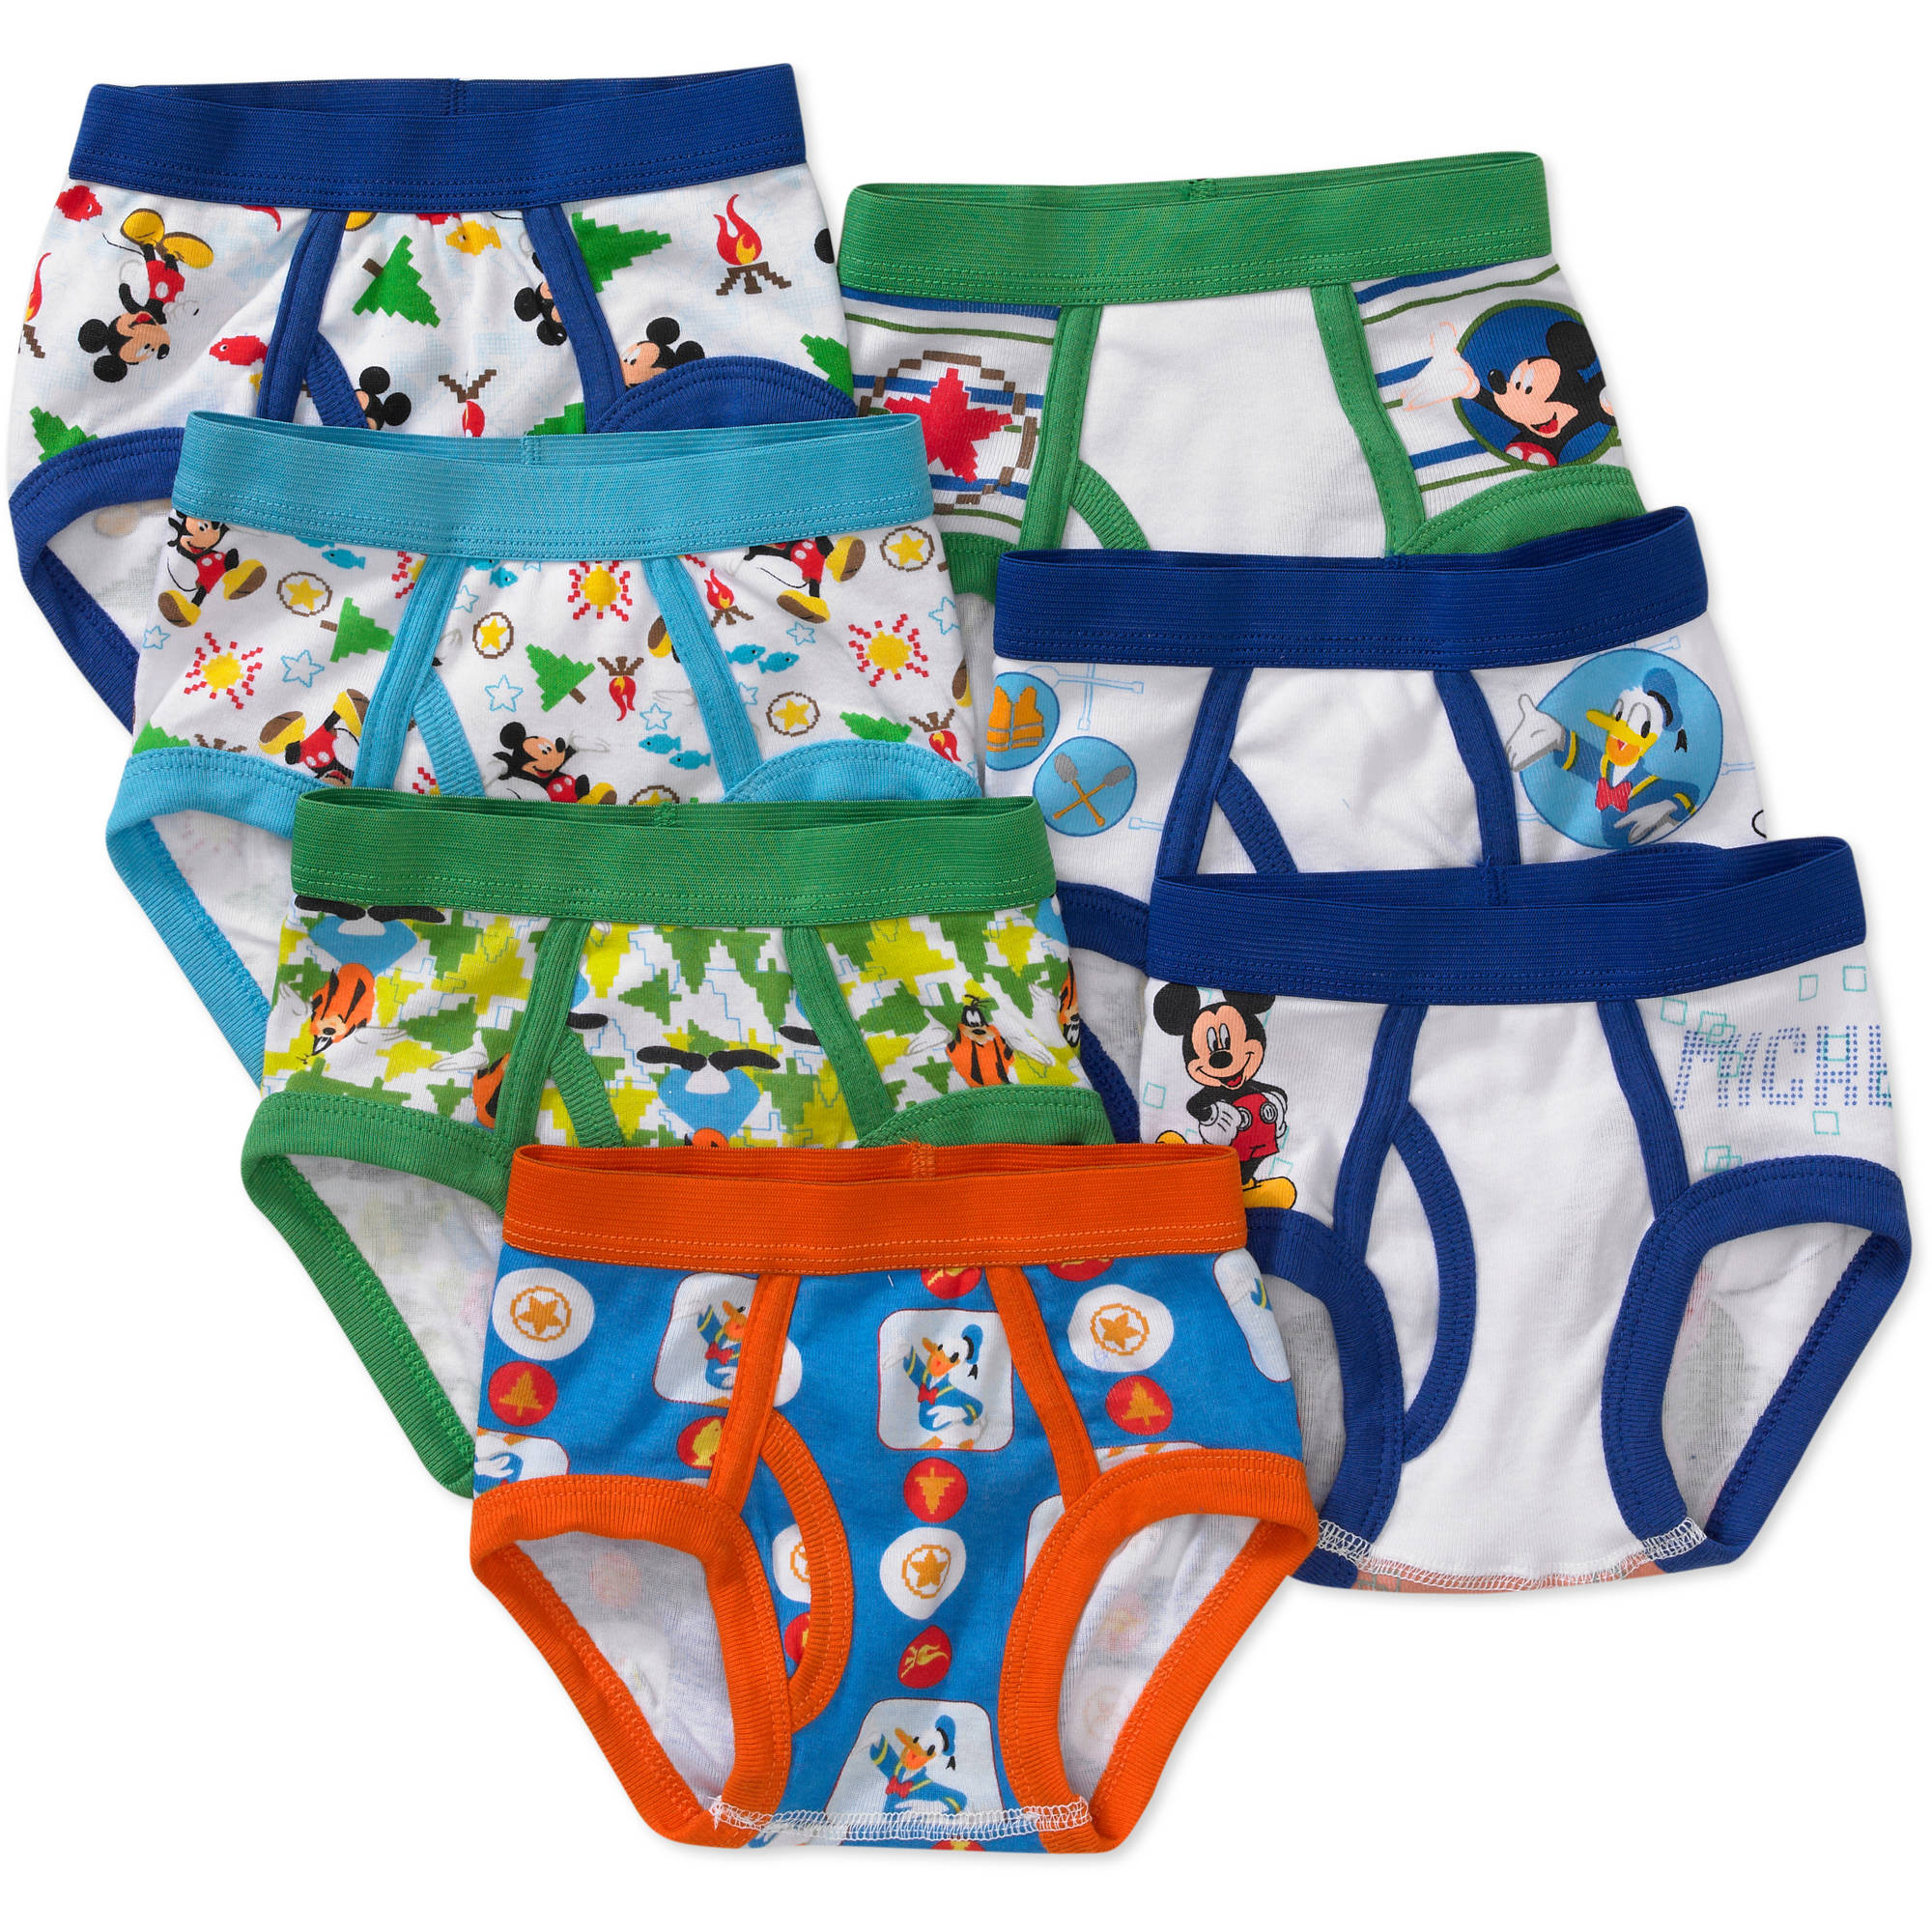 Disney Toddler Boys' Mickey Mouse Underwear, 7-Pack